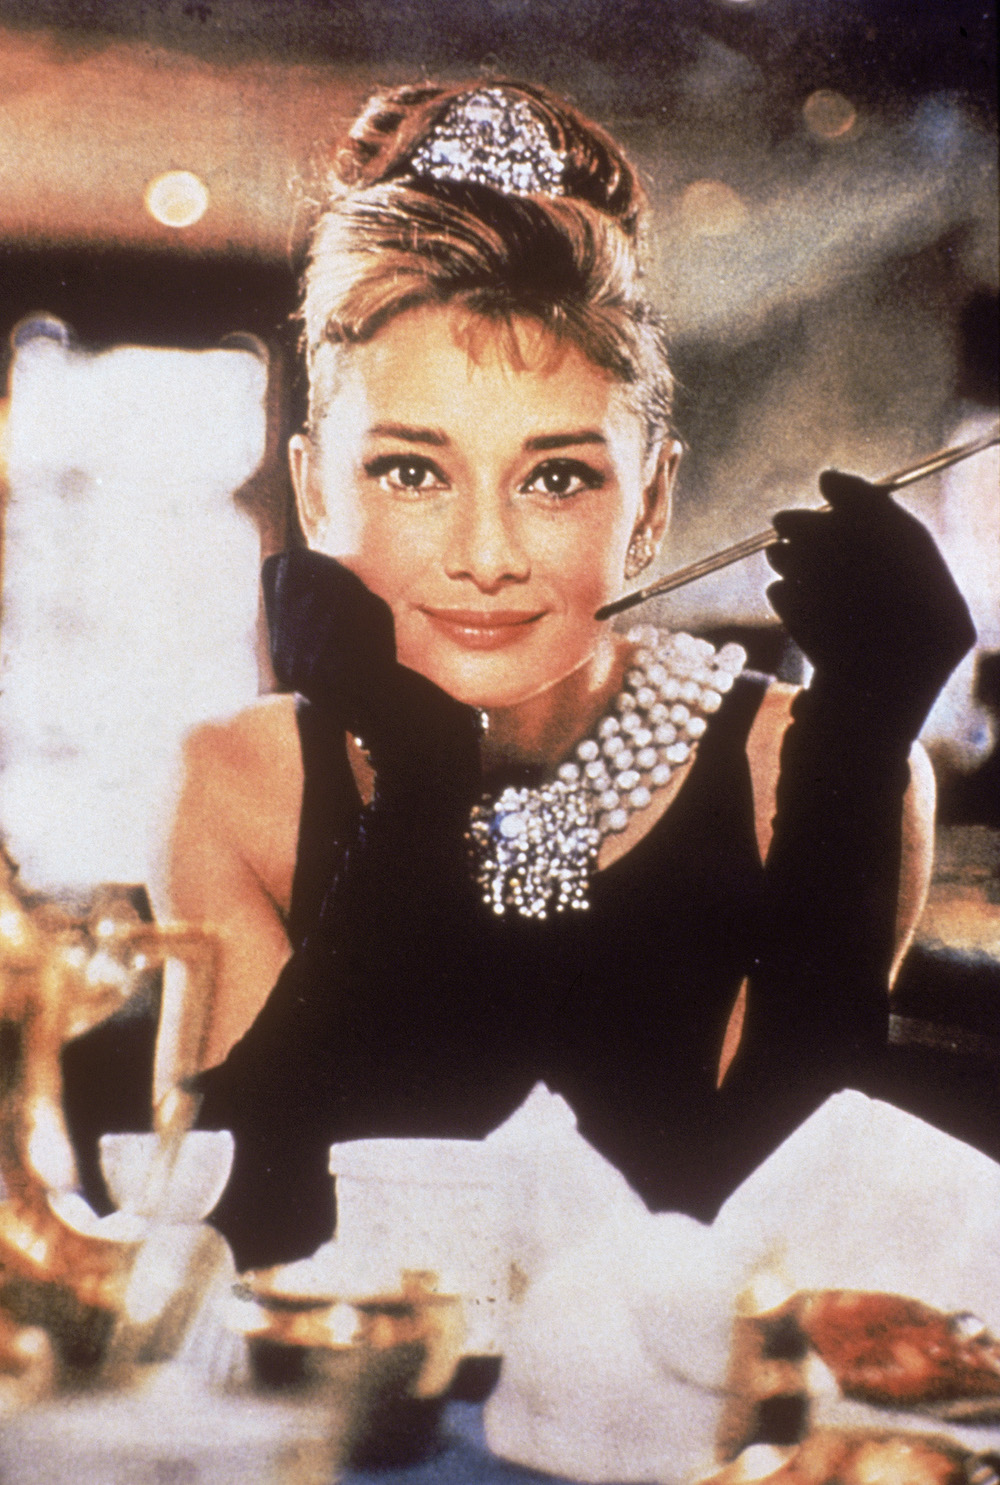 Belgian-born actress Audrey Hepburn (1929 - 1993), in a black, shoulderless dress, matching gloves, and a tiara, smiles with a cigarette holder in her hand, in her role as Holly Golightly the film, 'Breakfast at Tiffany's,' directed by Blake Edwards, New York, New York, 1961. (Photo by Paramount Pictures/Courtesy of Getty Images)